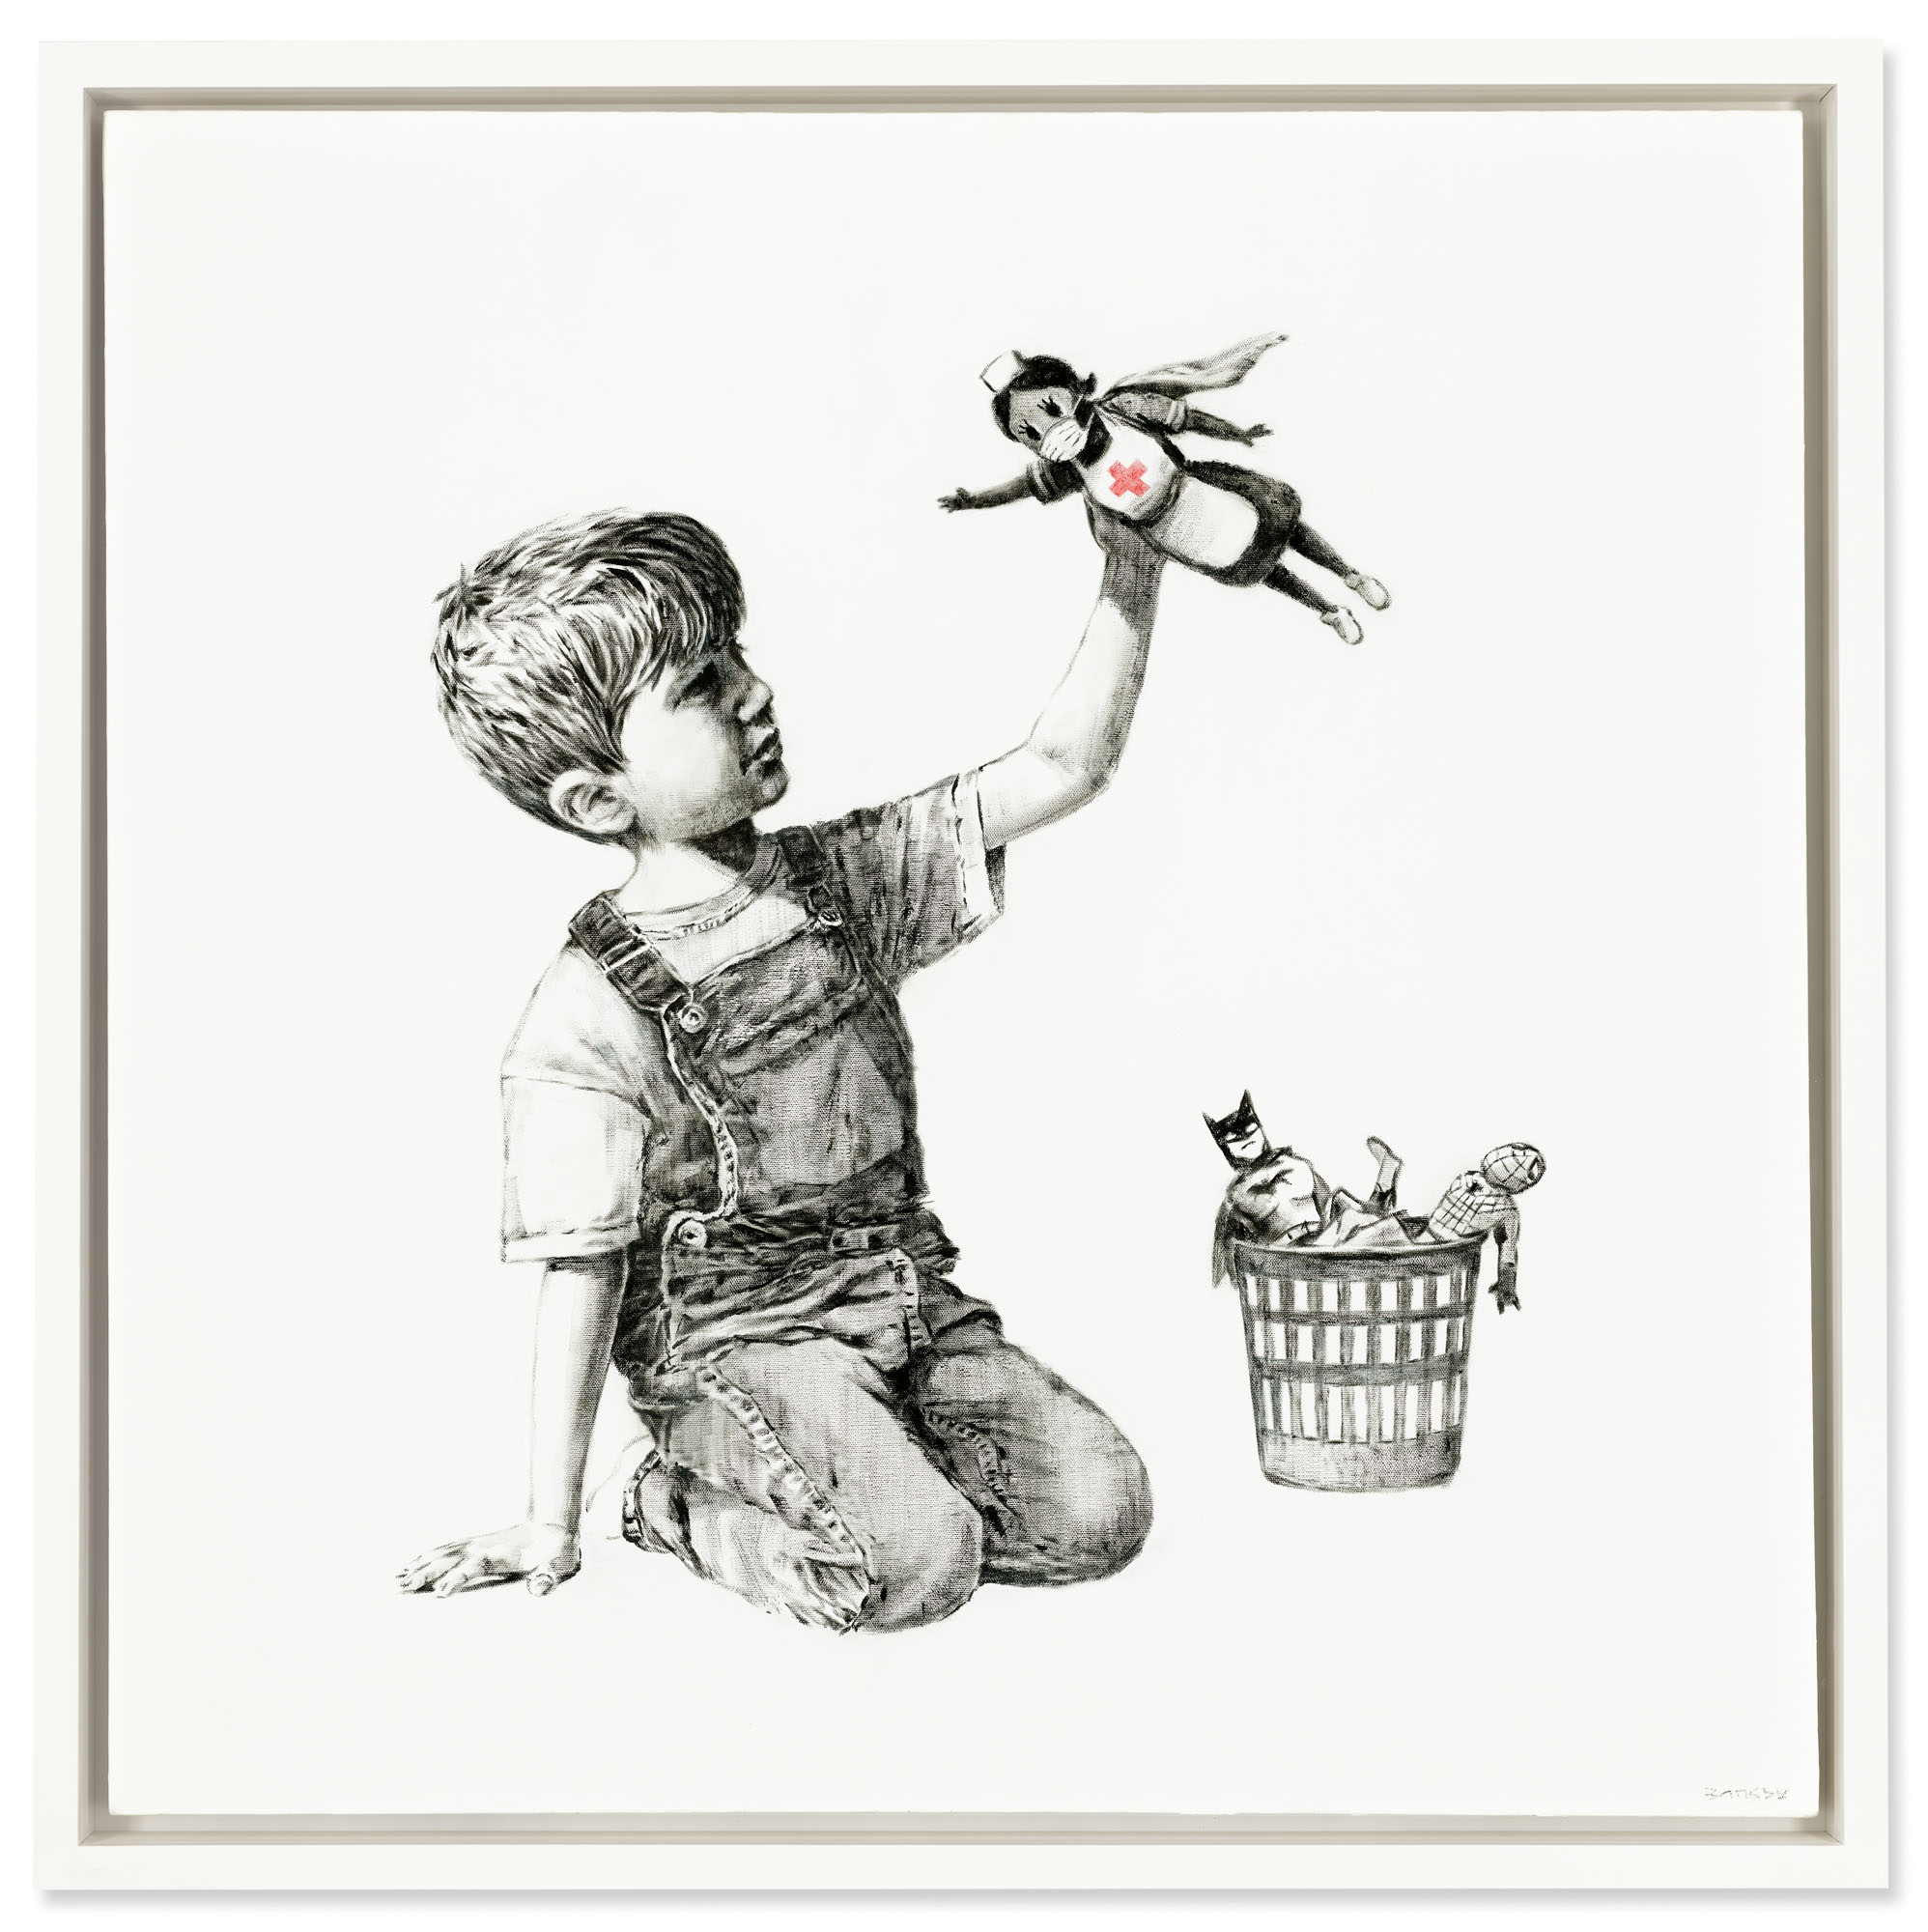 Banksy, Game Changer, 2020.Oil on canvas. 35 78 x 35 78 in. (91 x 91 cm.). Sold for £16,758,000 on 23 March 2021 at Christie's in London